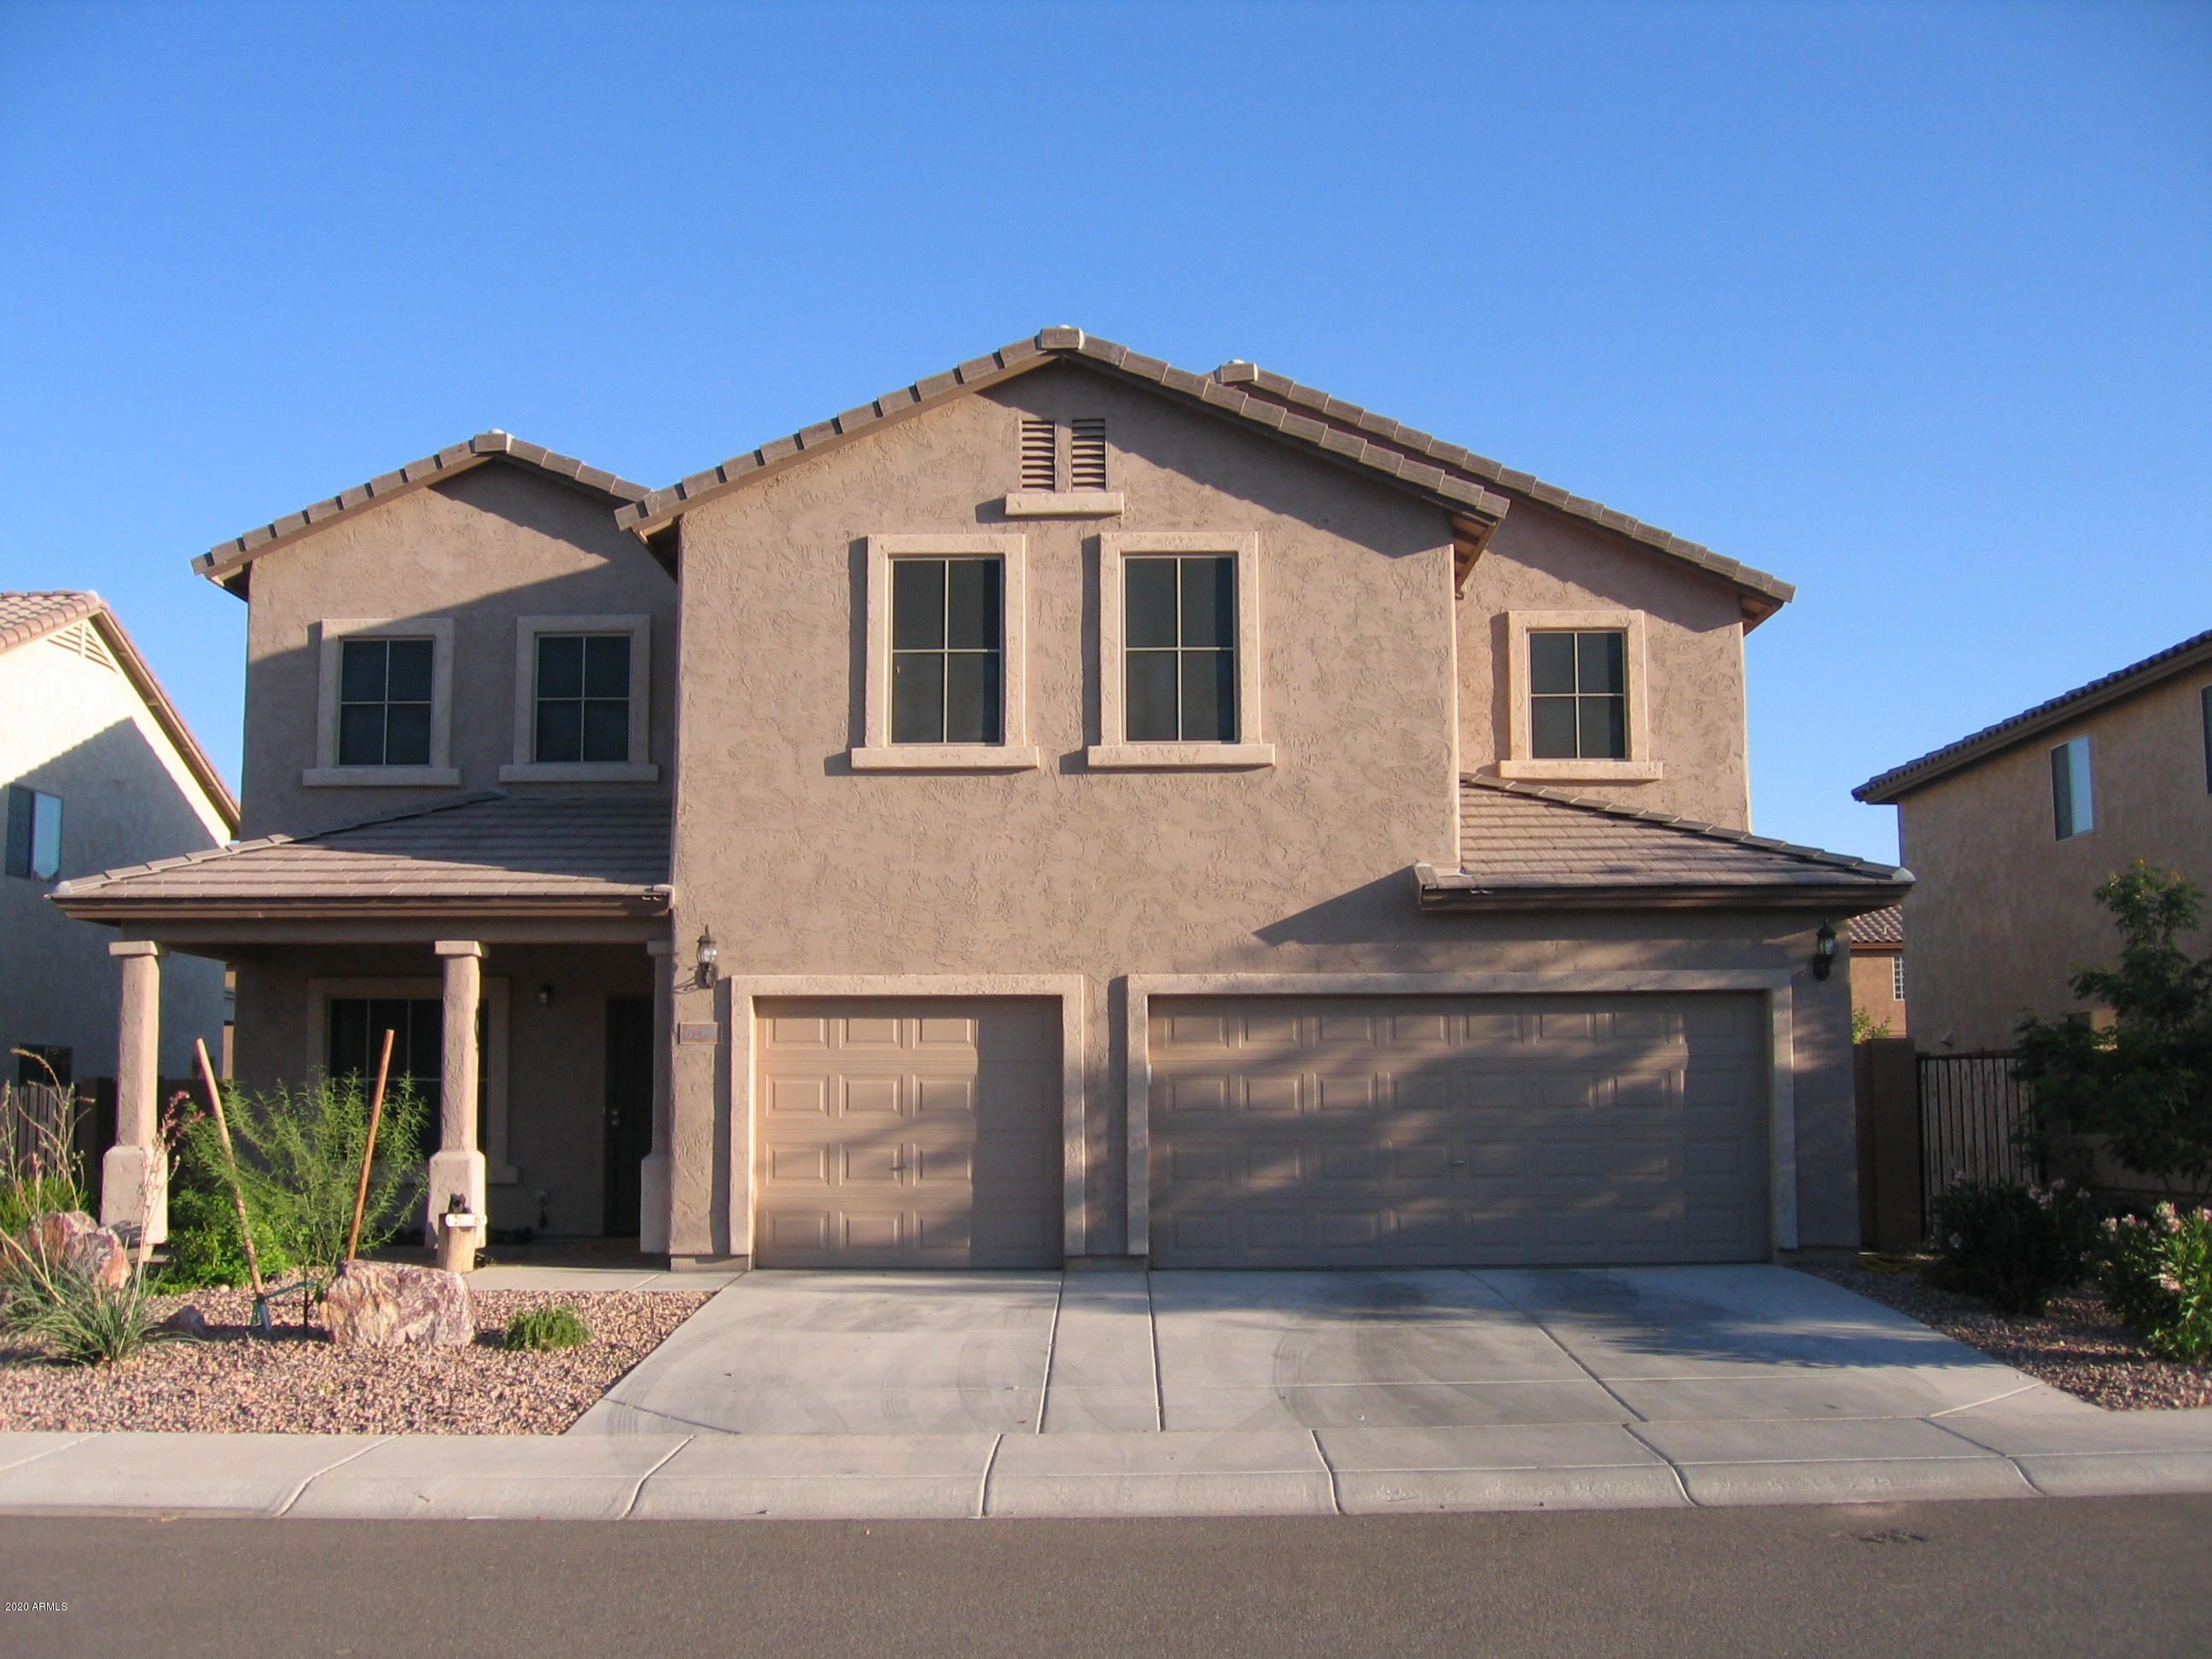 MLS 6071432 Florence Metro Area, Florence, AZ 85132 Florence Homes for Rent